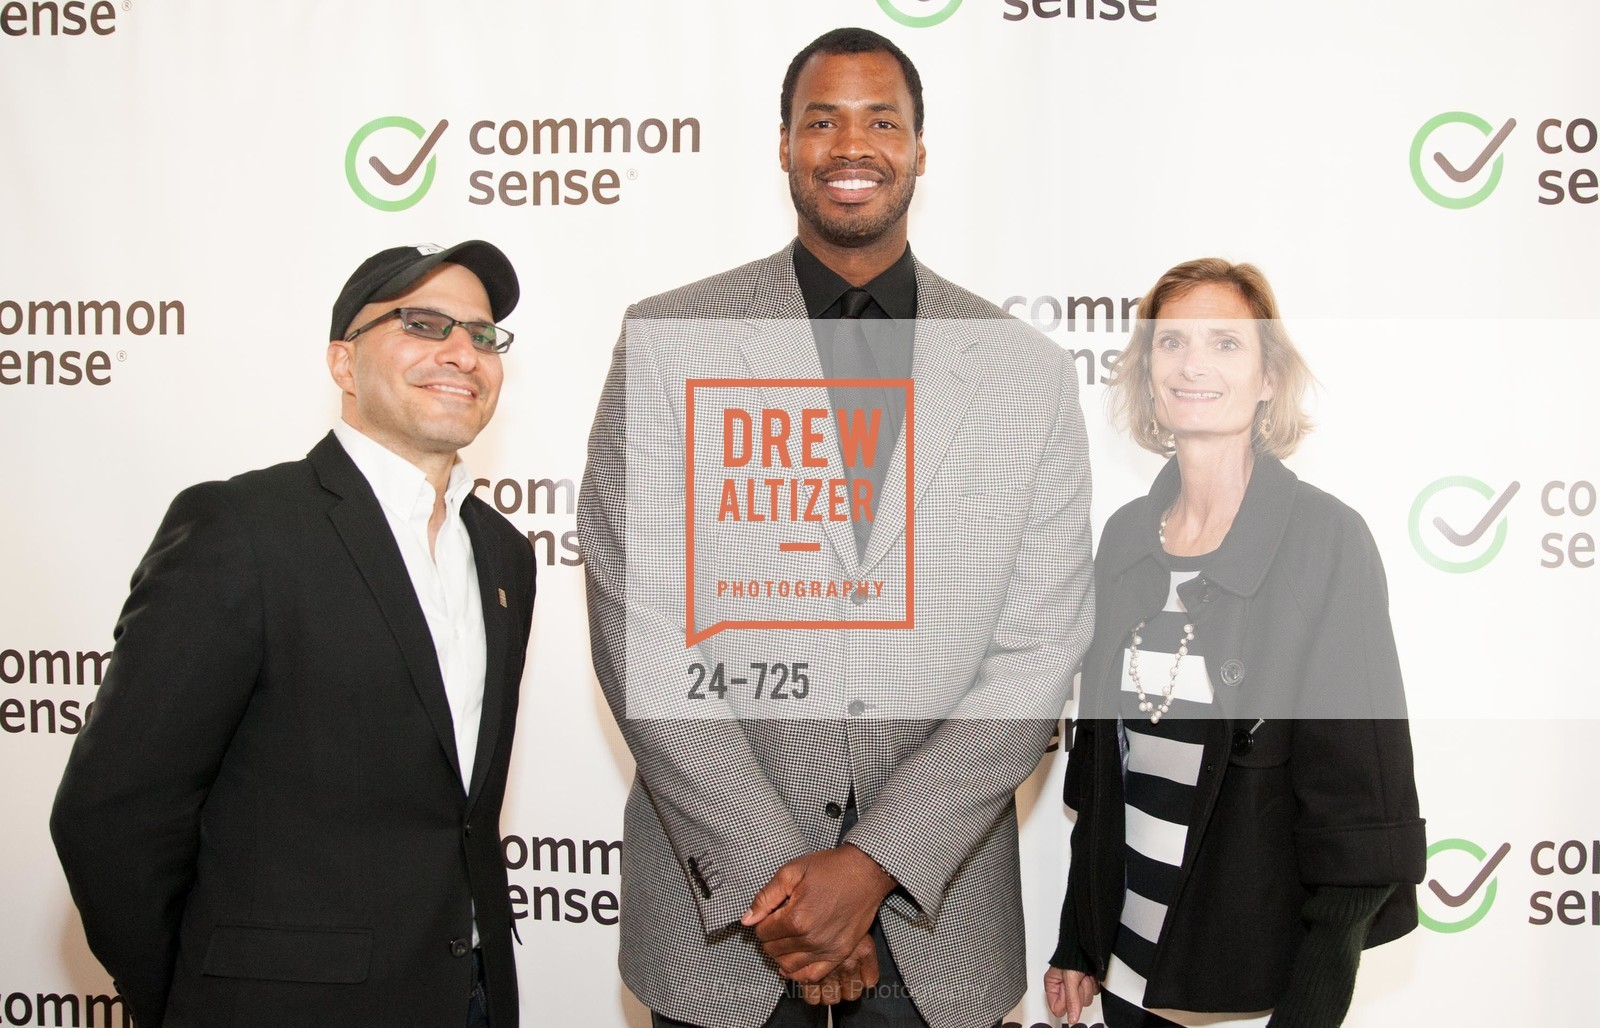 Hadi Partovi, Jason Collins, Liz Steyer, COMMON SENSE Media Awards 2015, US, May 13th, 2015,Drew Altizer, Drew Altizer Photography, full-service agency, private events, San Francisco photographer, photographer california